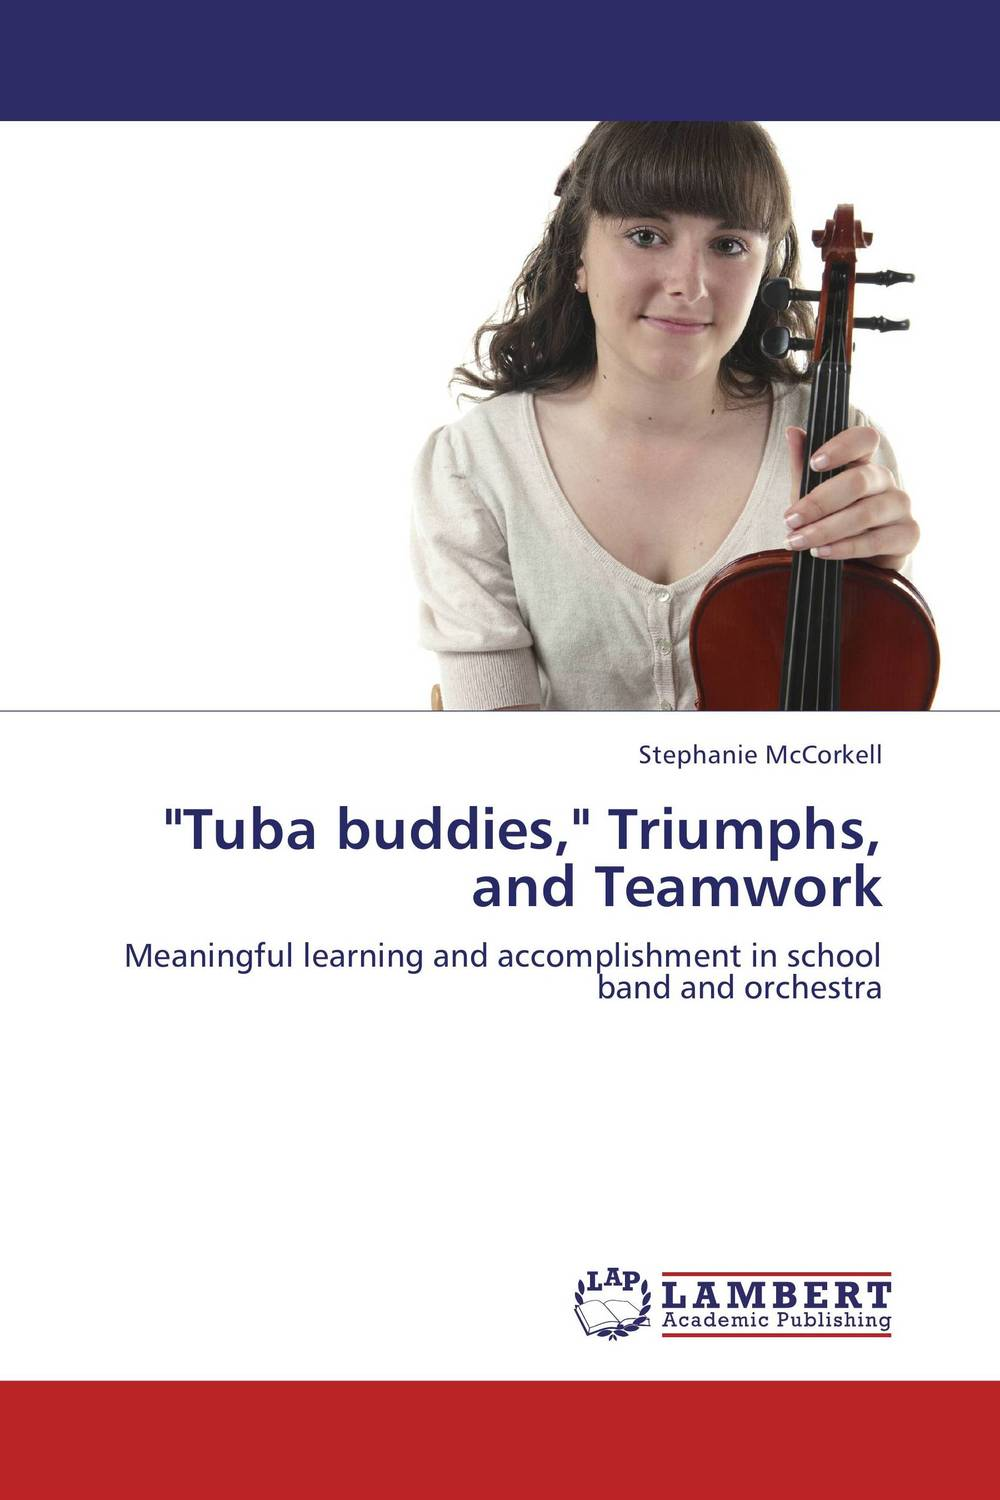 Tuba buddies, Triumphs, and Teamwork depression among school aged epileptic children and their siblings